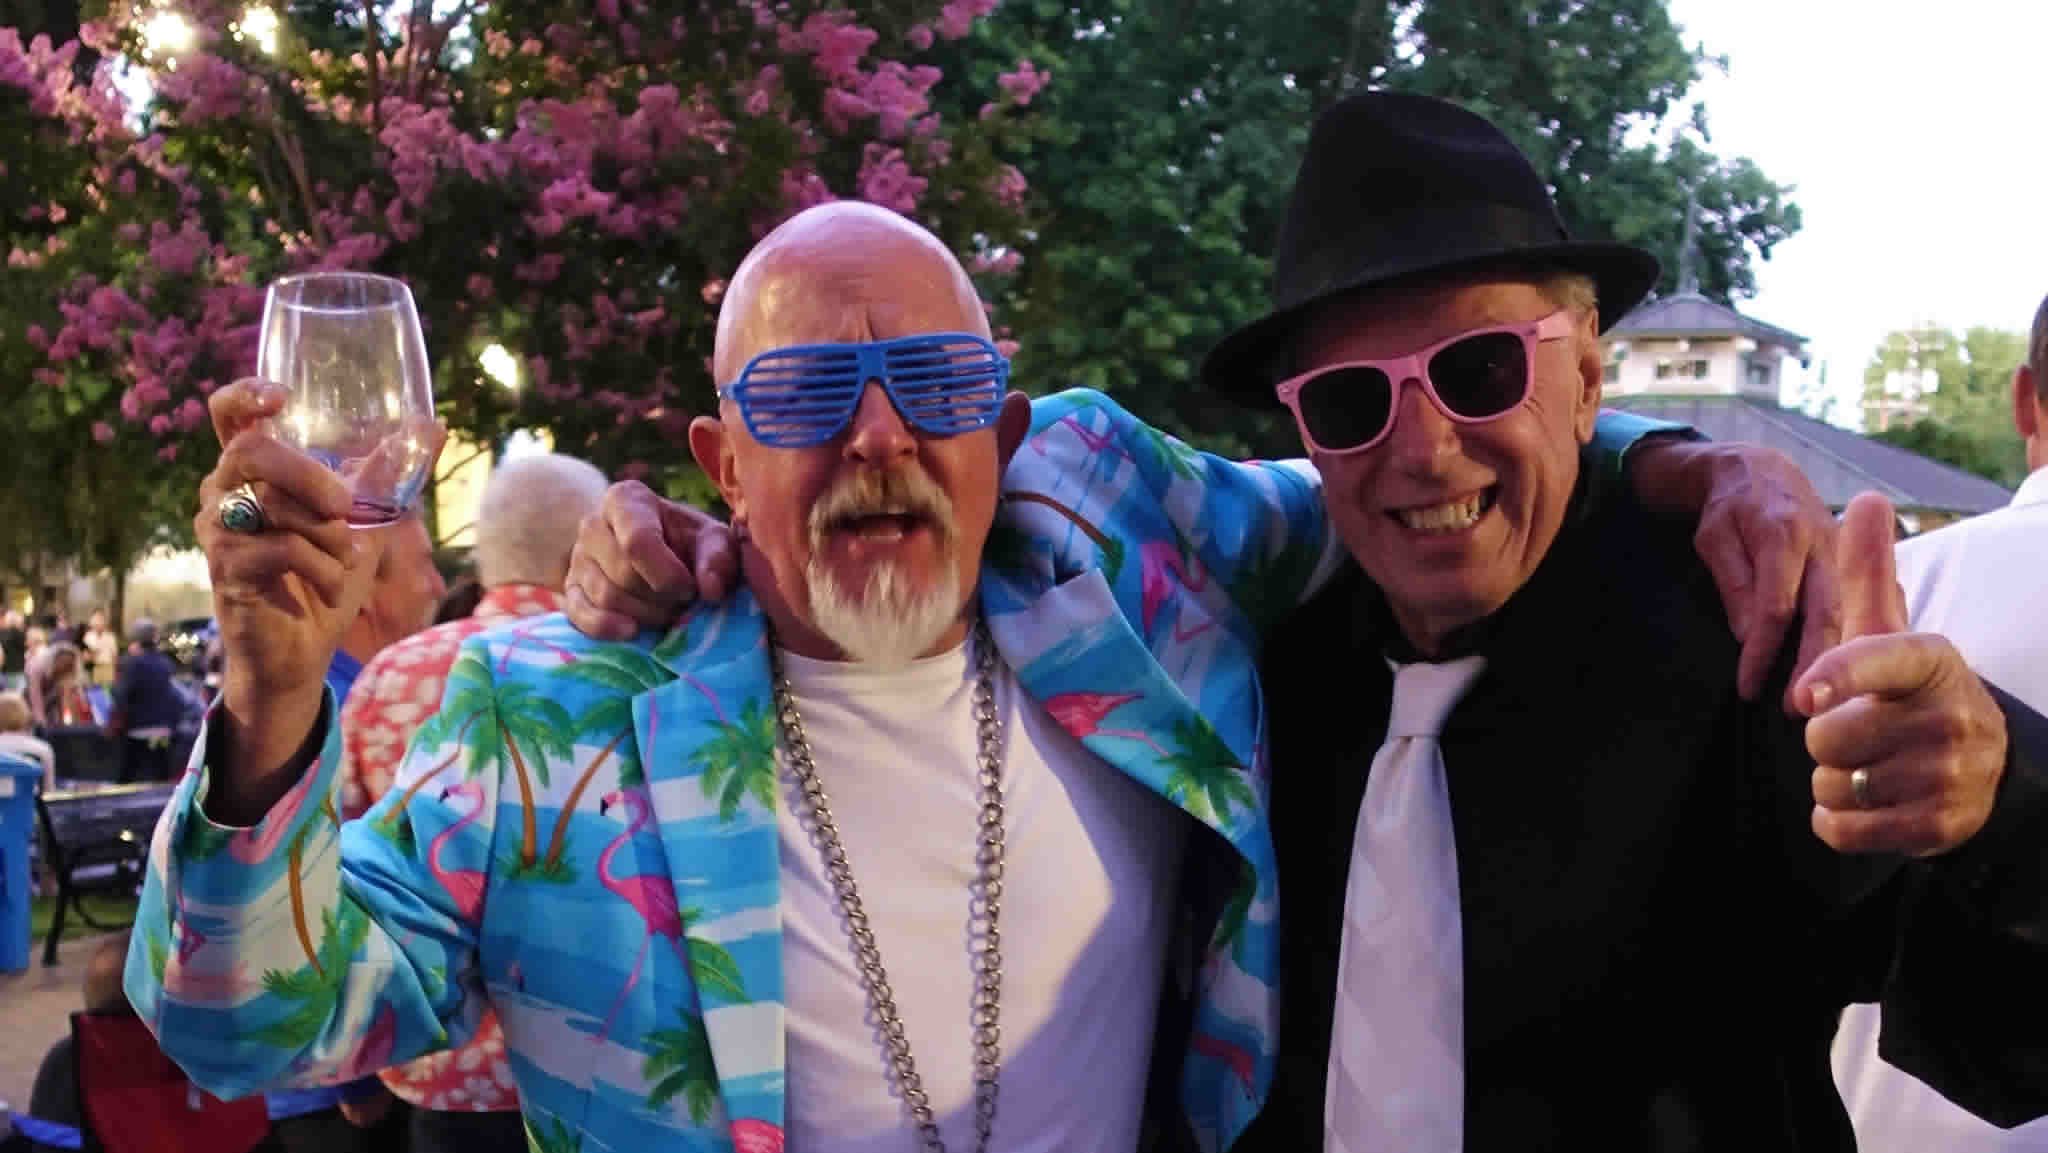 Meet Friends At Healdsburg's Summer Concerts On The Plaza